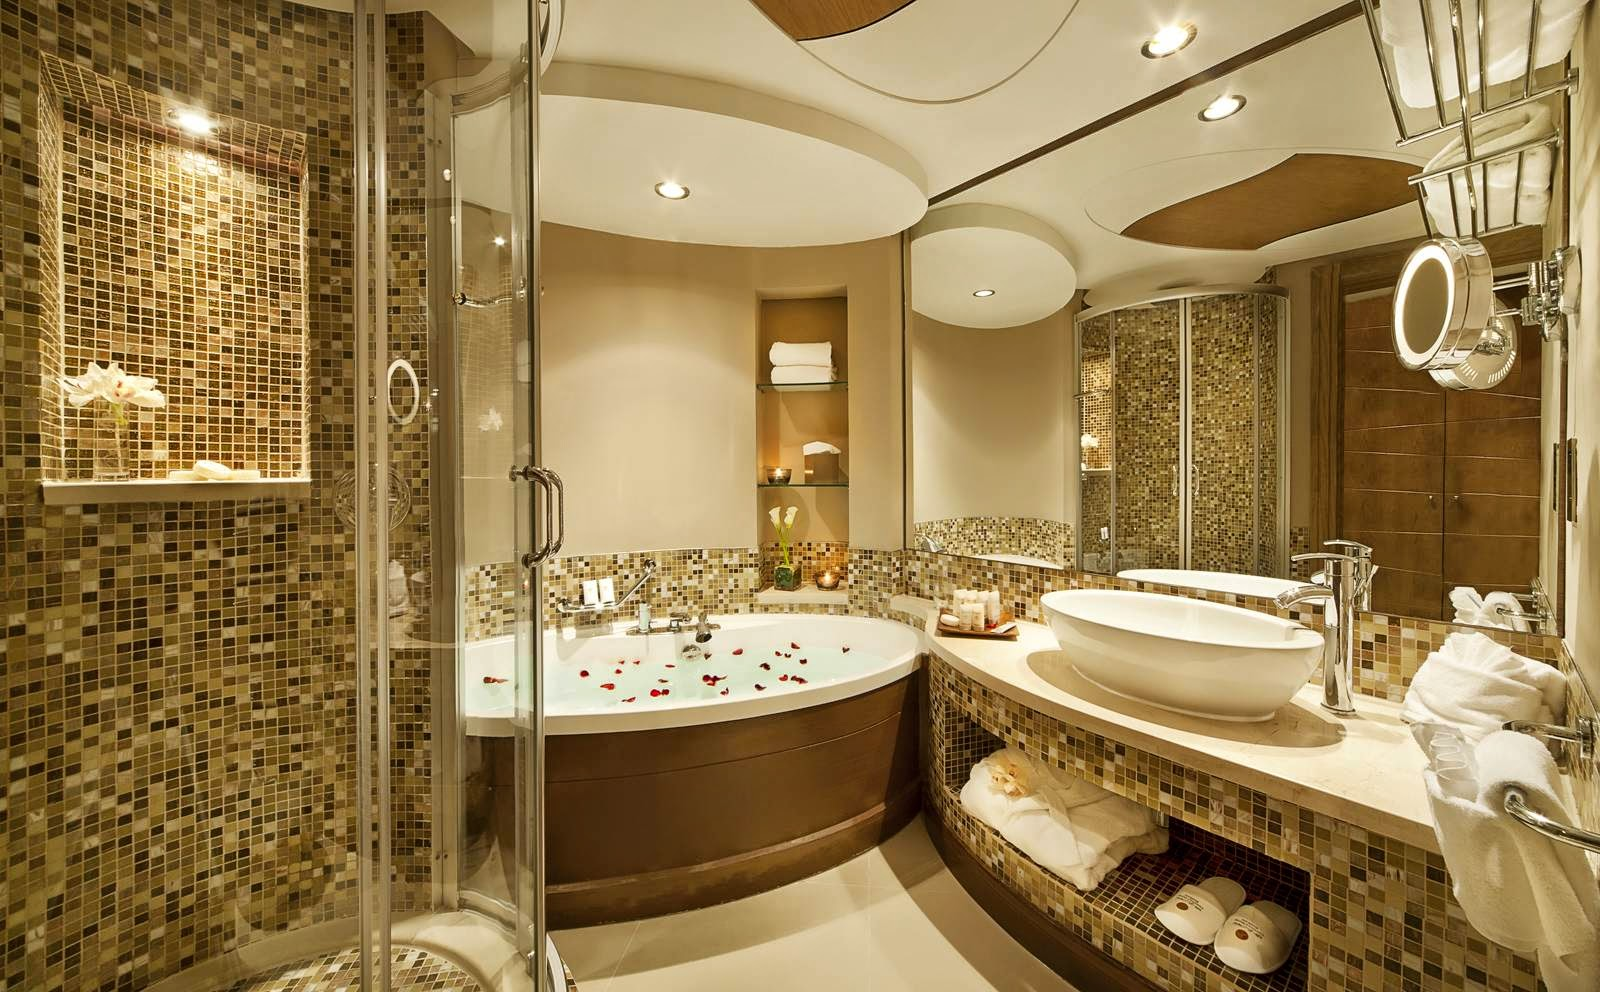 Incredible Designs For Your Bathroom A Room For Everyone